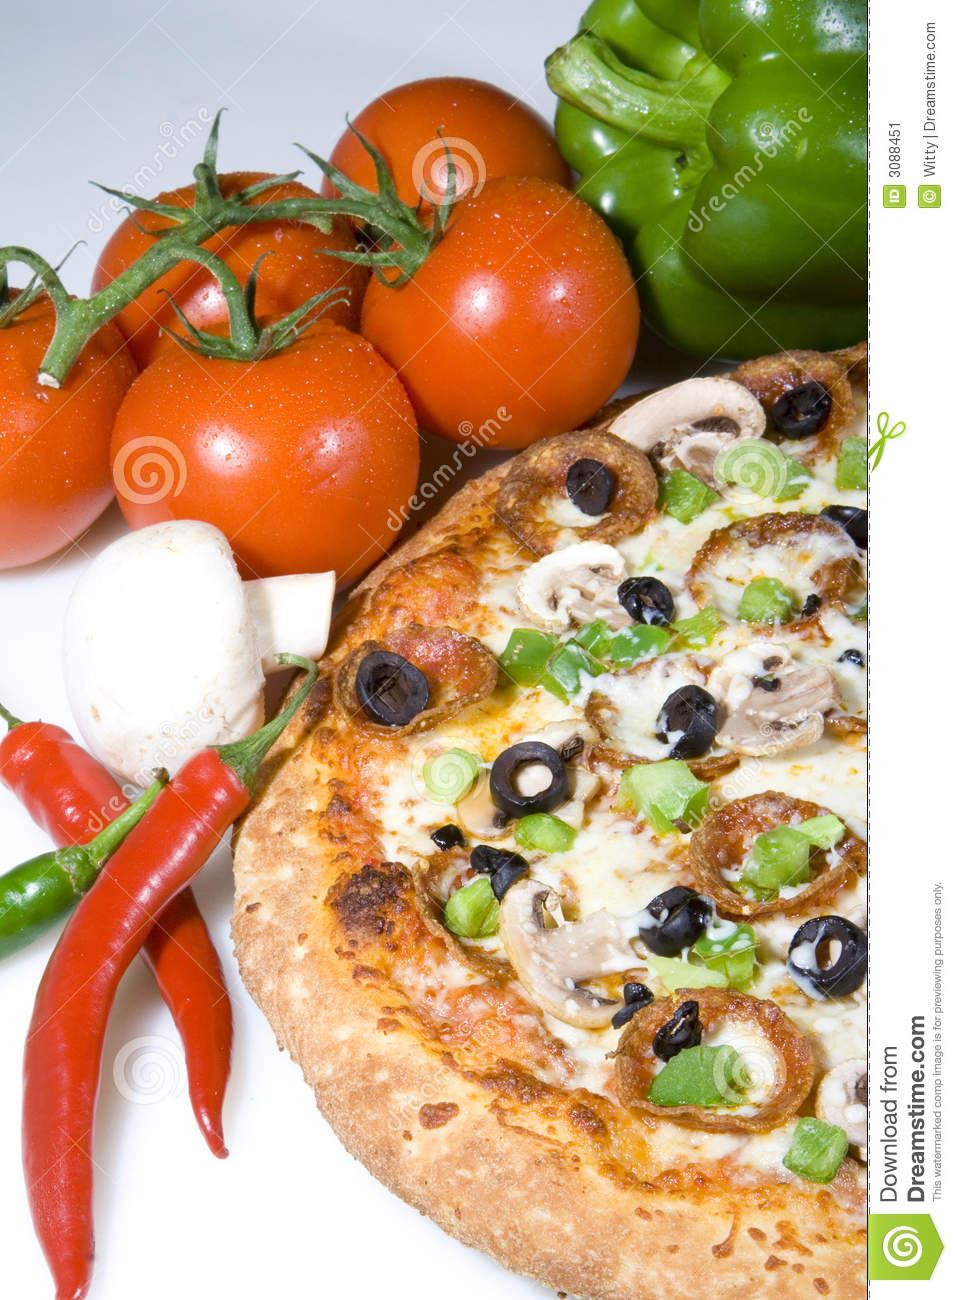 Pizza And Fresh Ingredients Stock Image - Image: 3088451